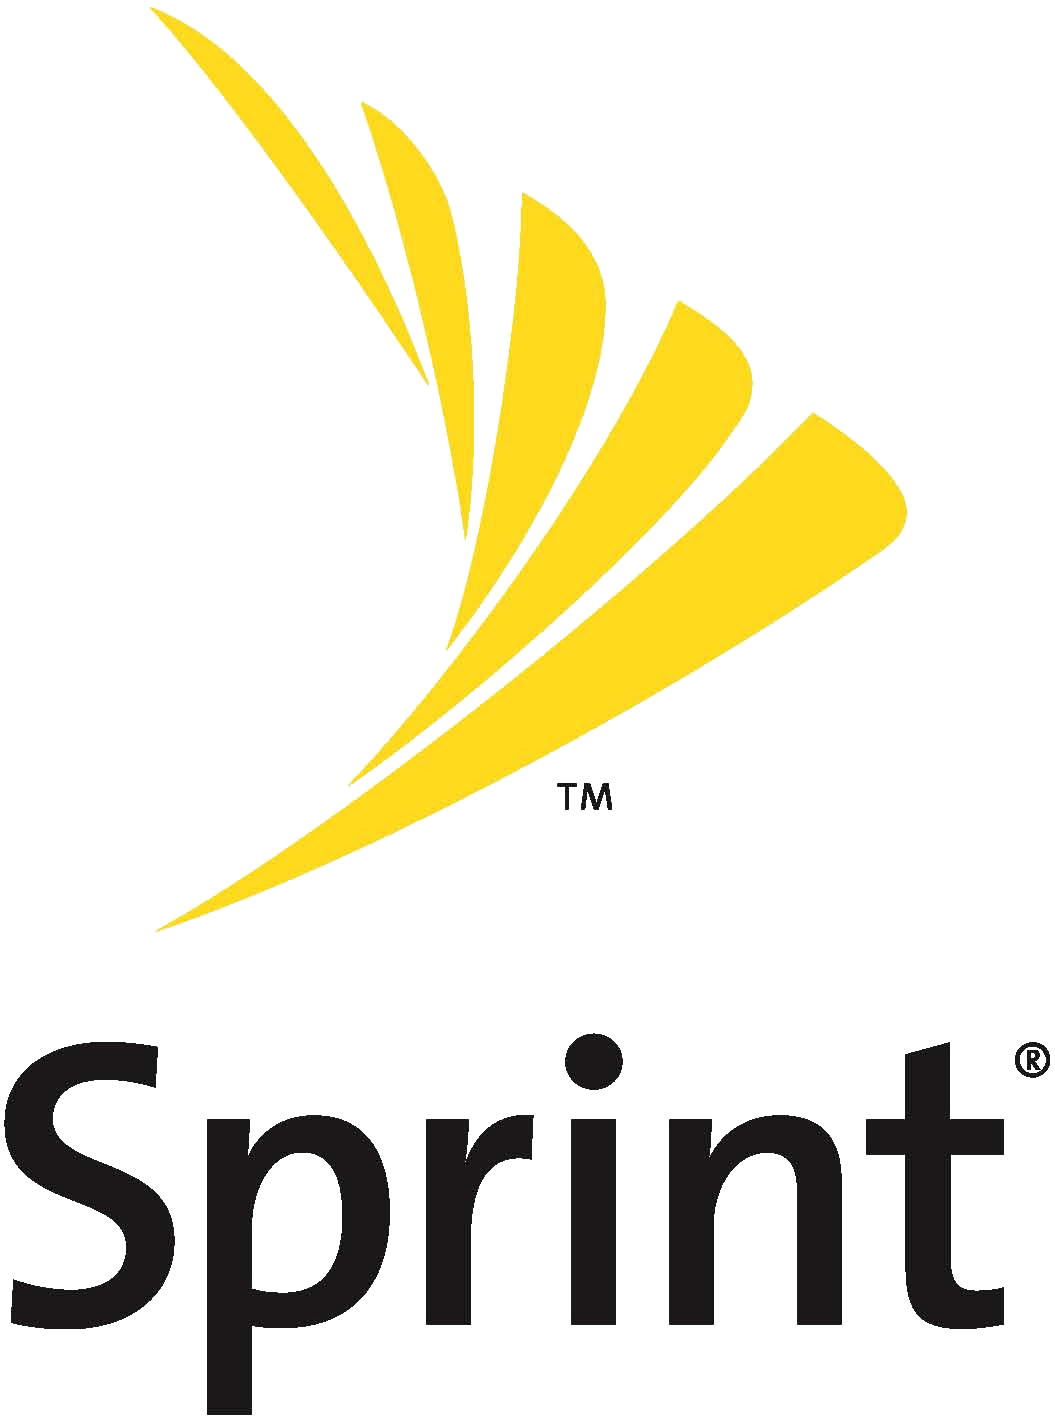 FCC to Approve Sprint-Clearwire Merger, Spectrum Intact